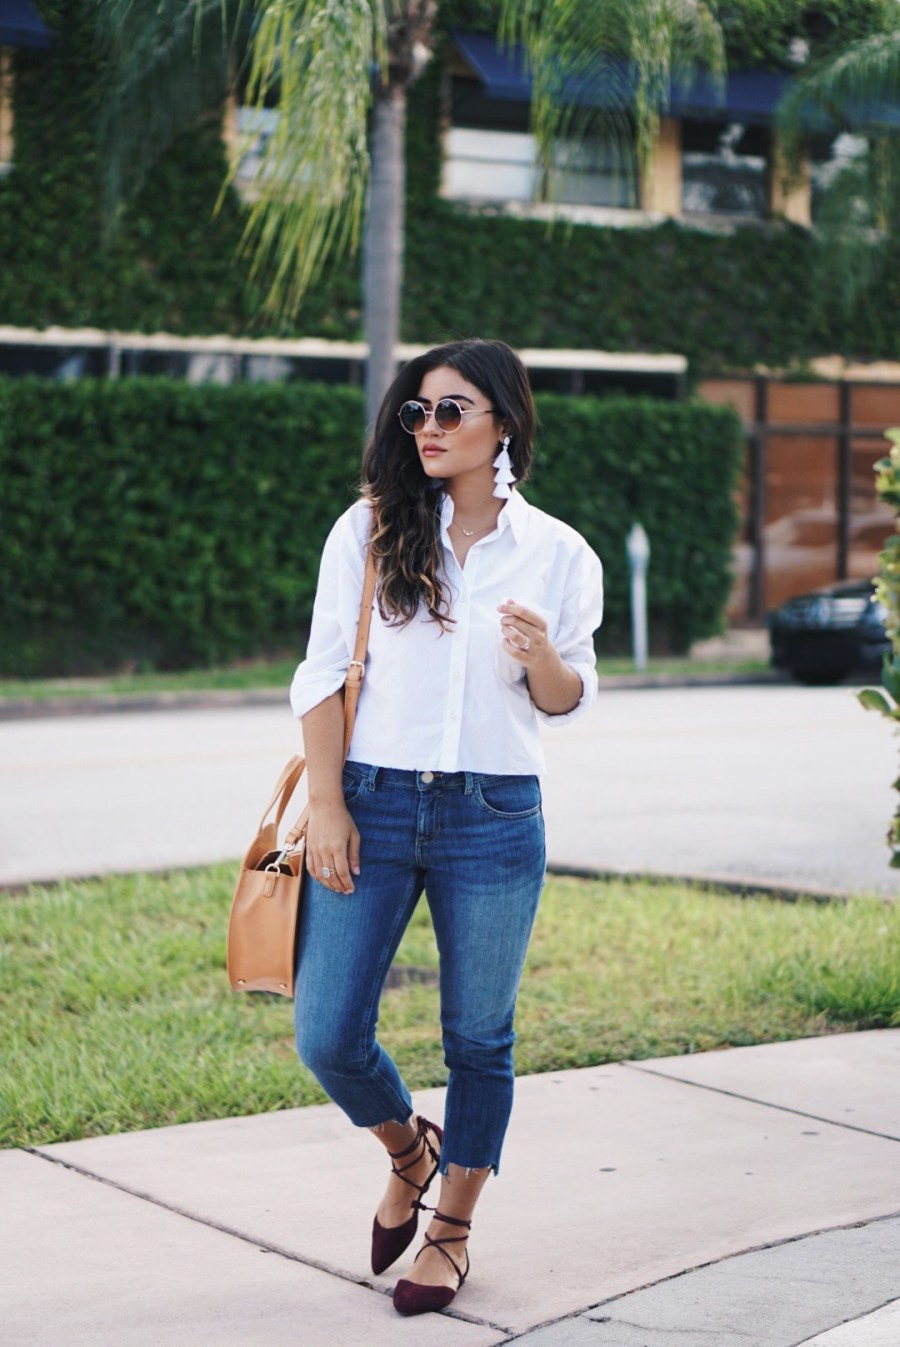 Classic Outfit Must Haves